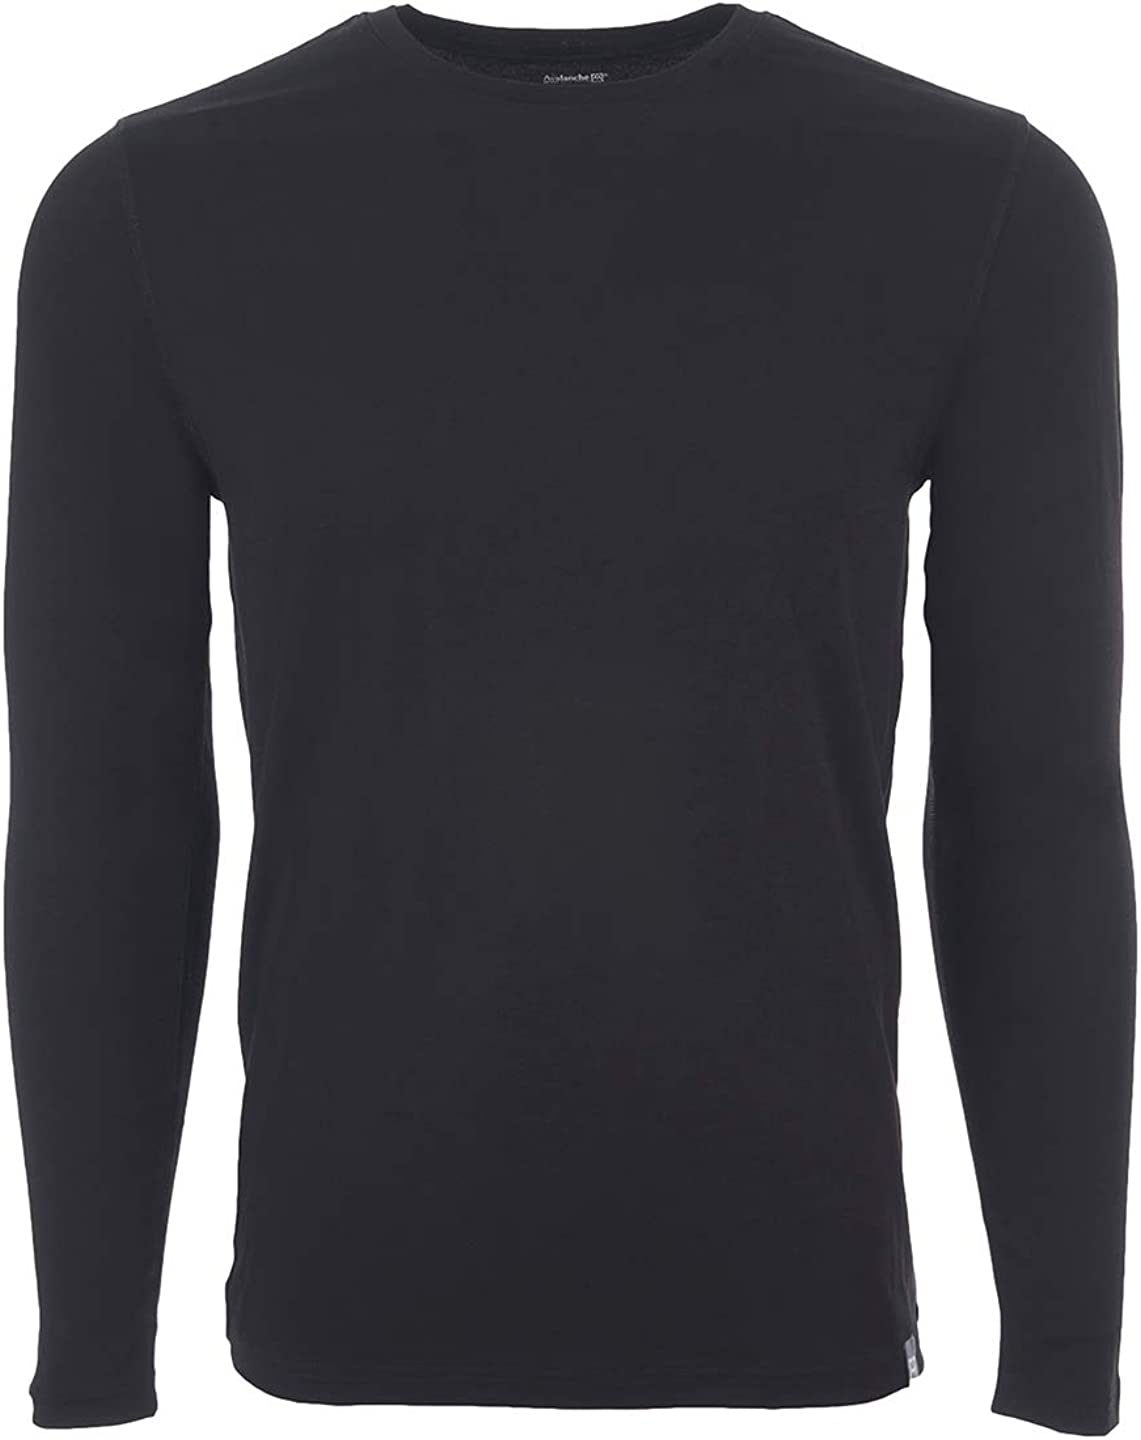 Avalanche Men's Free shipping New Challenge the lowest price of Japan ☆ Moisture Wicking Crewneck Blend Sleeve Wool Long